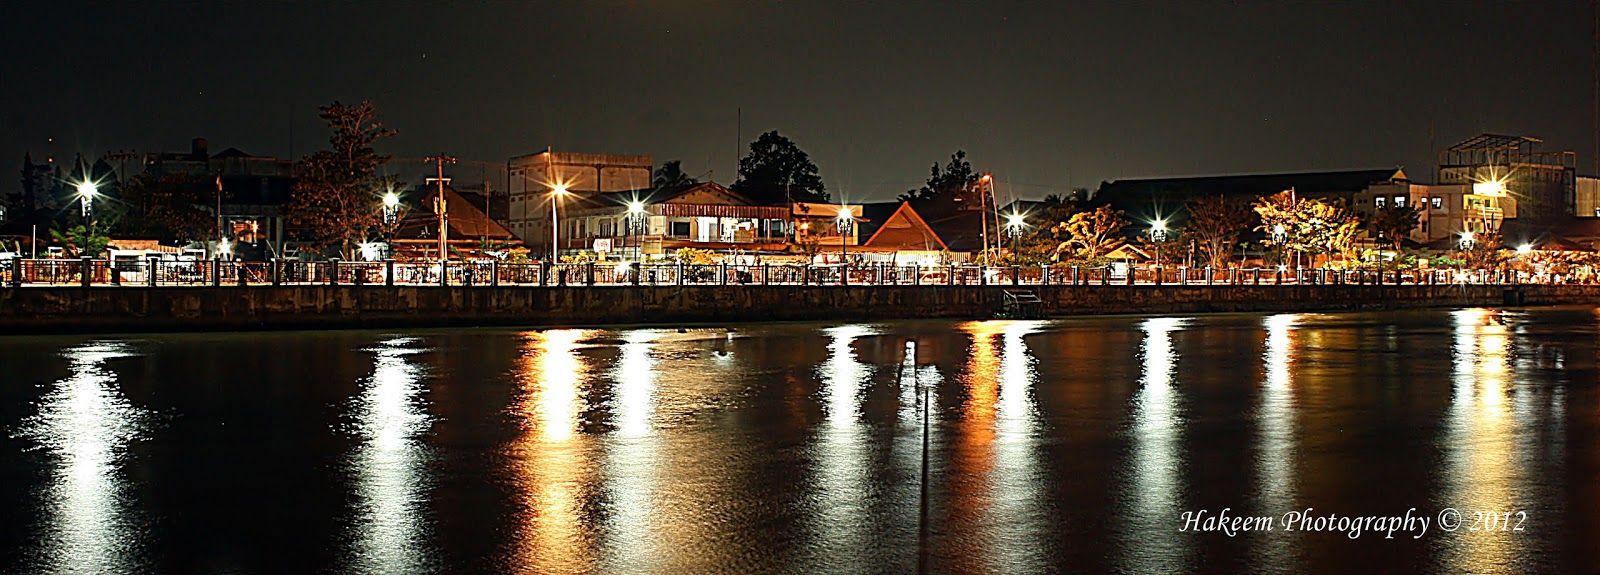 Night Scene of Siring Banjarmasin